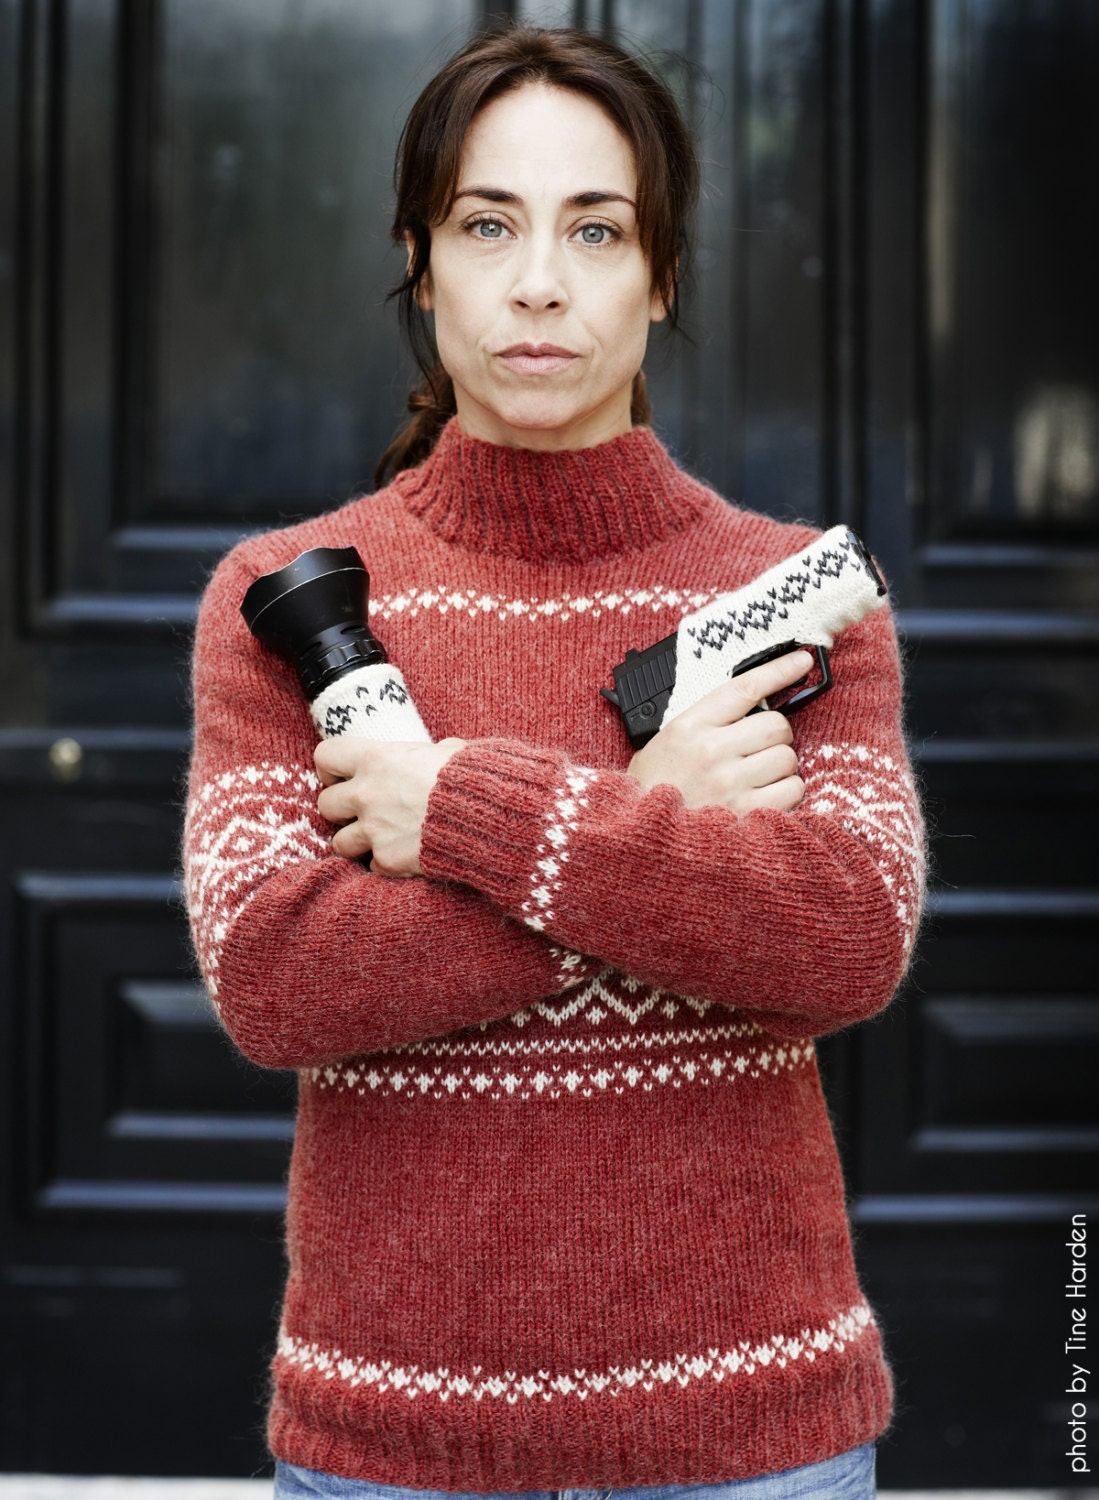 Knitting Pattern For The Killing Jumper : Strawberries & Crime - a knitting pattern inspired by The Killing (Forbry...